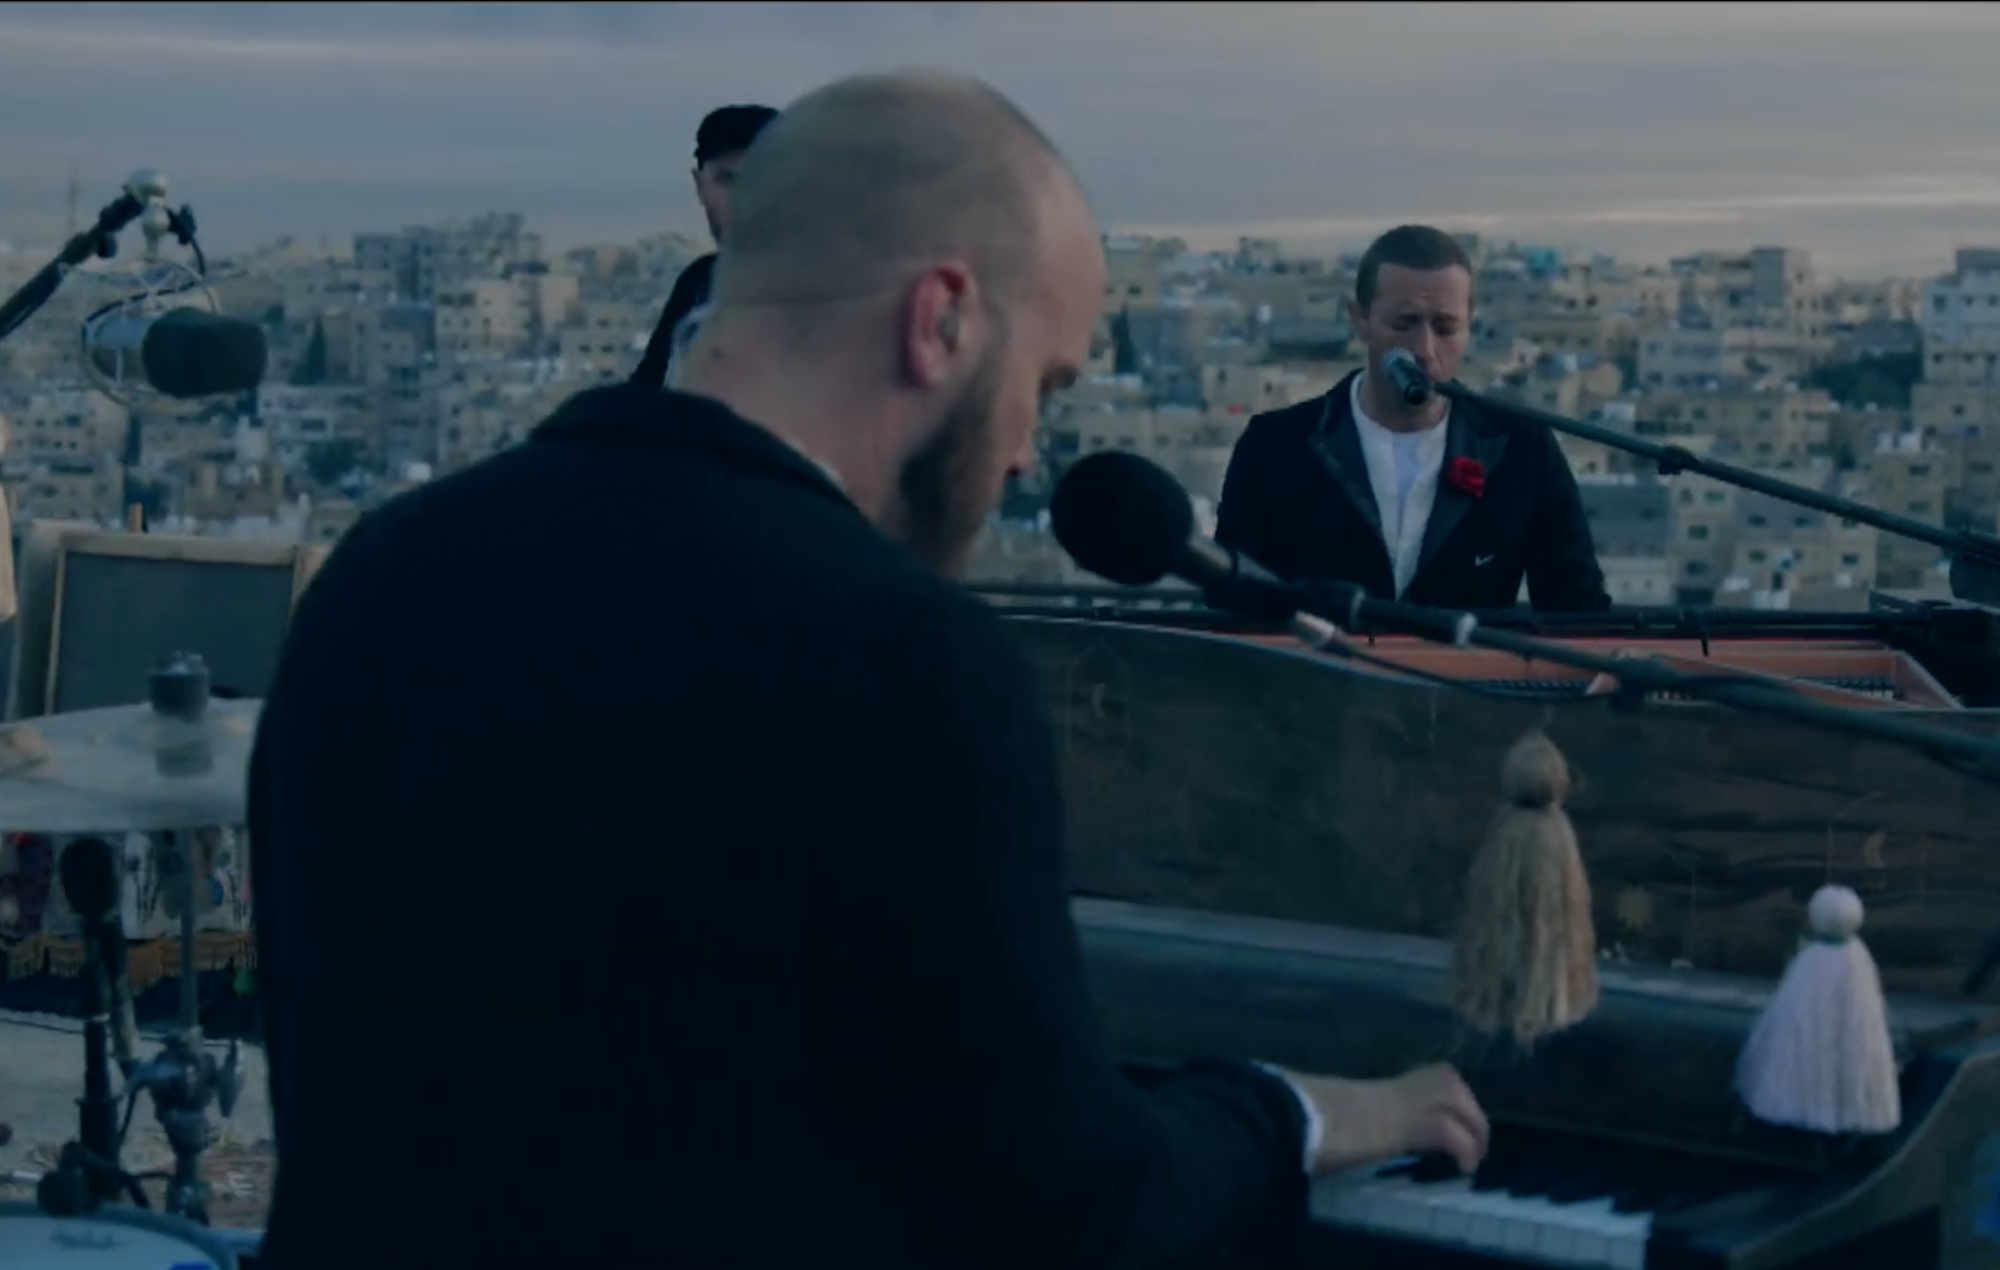 Watch Coldplay perform their new album 'Everyday Life' under a beautiful sunrise in Jordan